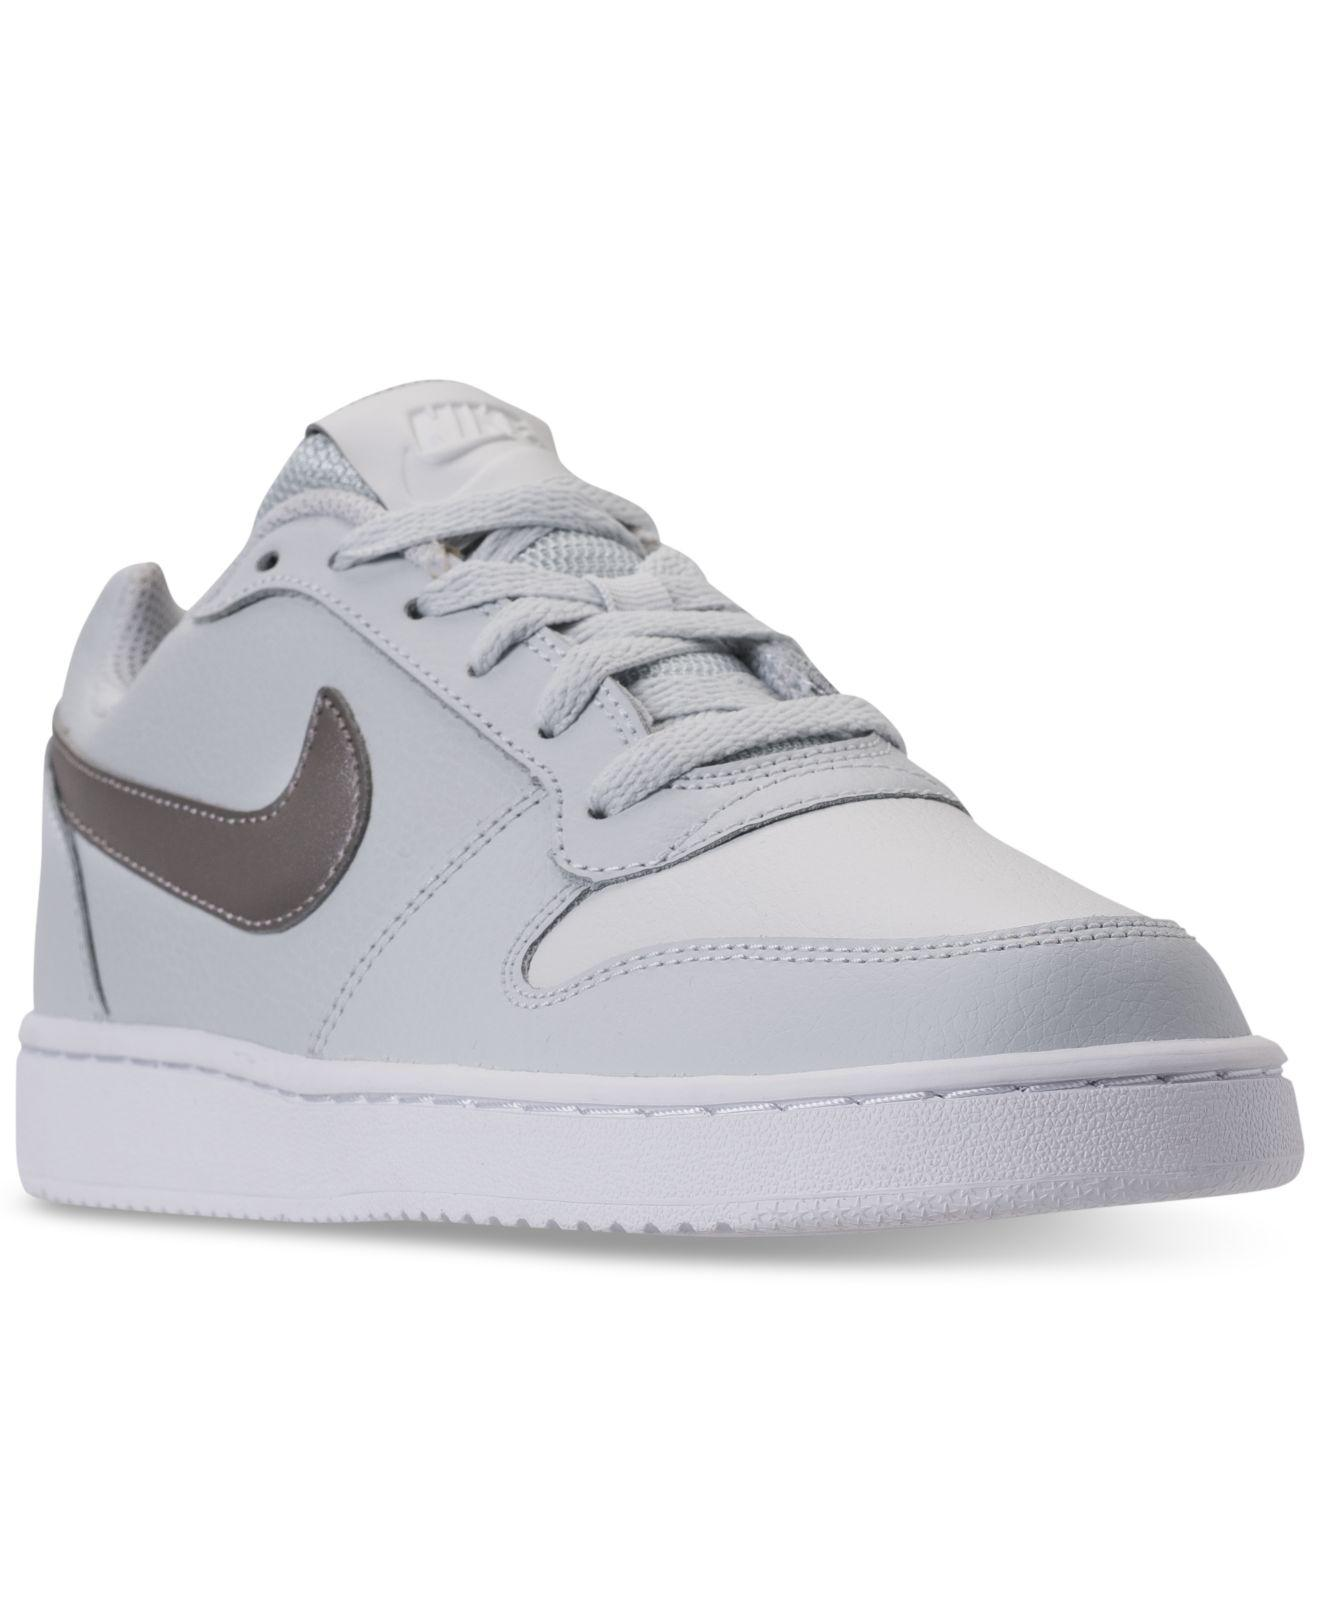 5e8d6e8e4e2 Lyst - Nike Ebernon Low-top Leather Sneaker in Gray - Save 23%